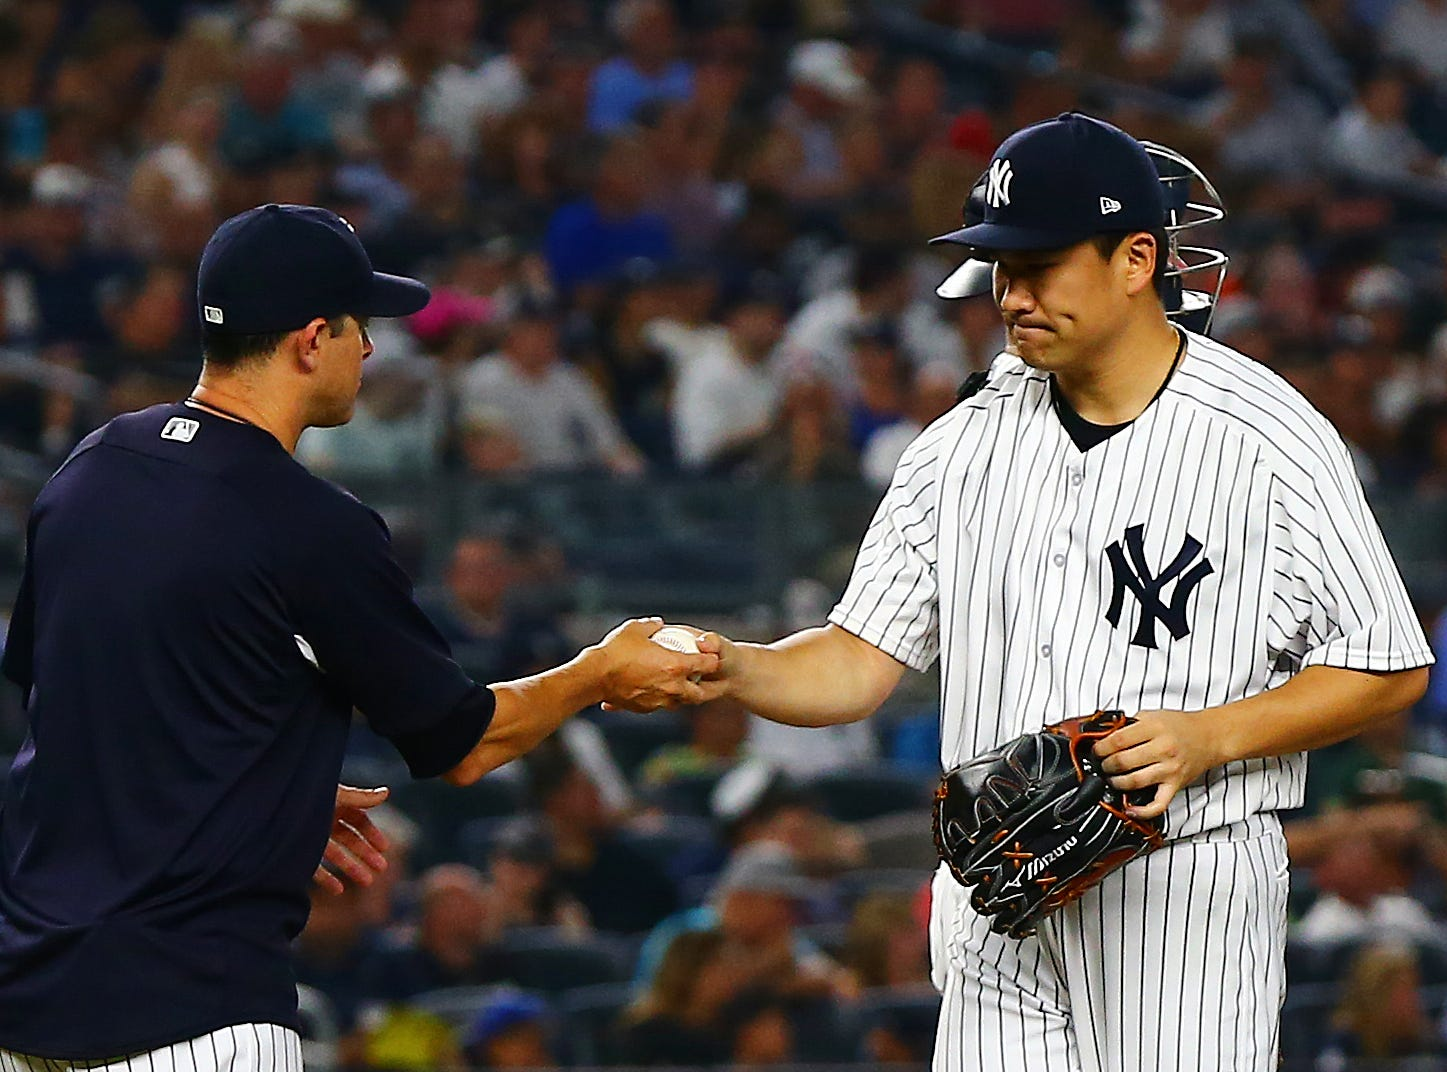 Aug 10, 2018; Bronx, NY, USA; New York Yankees starting pitcher Masahiro Tanaka (19) hands the ball to manager Aaron Boone (17) after being taken out of the game against the Texas Rangers during the sixth inning at Yankee Stadium. Mandatory Credit: Andy Marlin-USA TODAY Sports